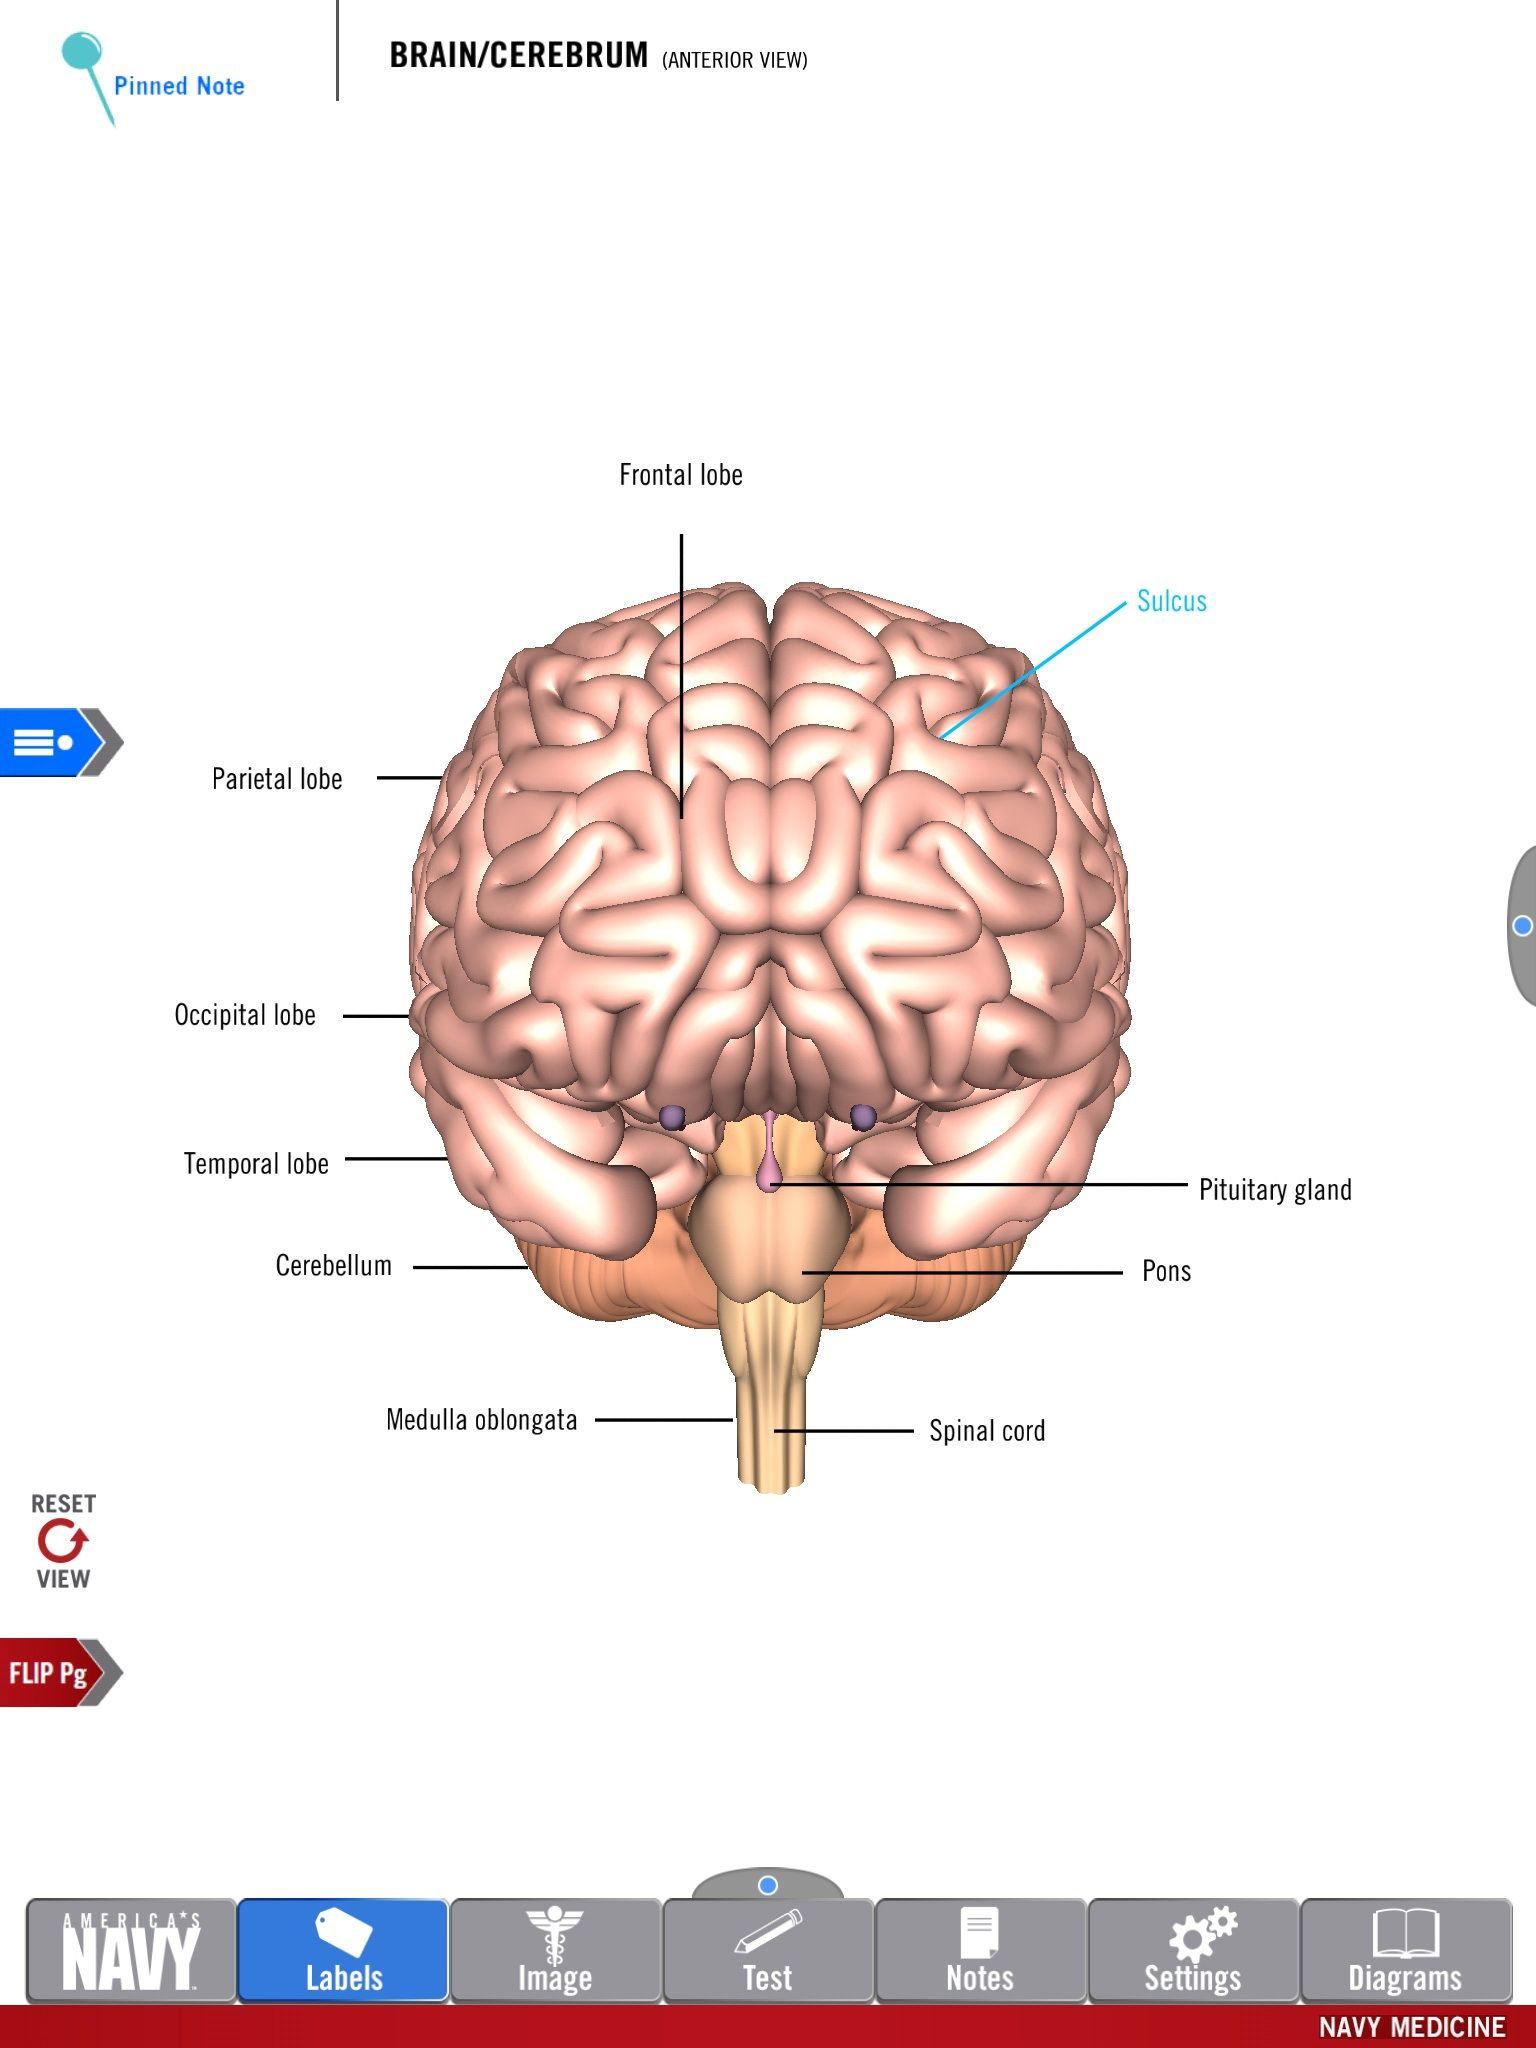 medium resolution of diagram of the brain cerebrum from the free anatomy study guide app by america s navy includes high res 3 d diagrams navy usnavy americasnavy navy